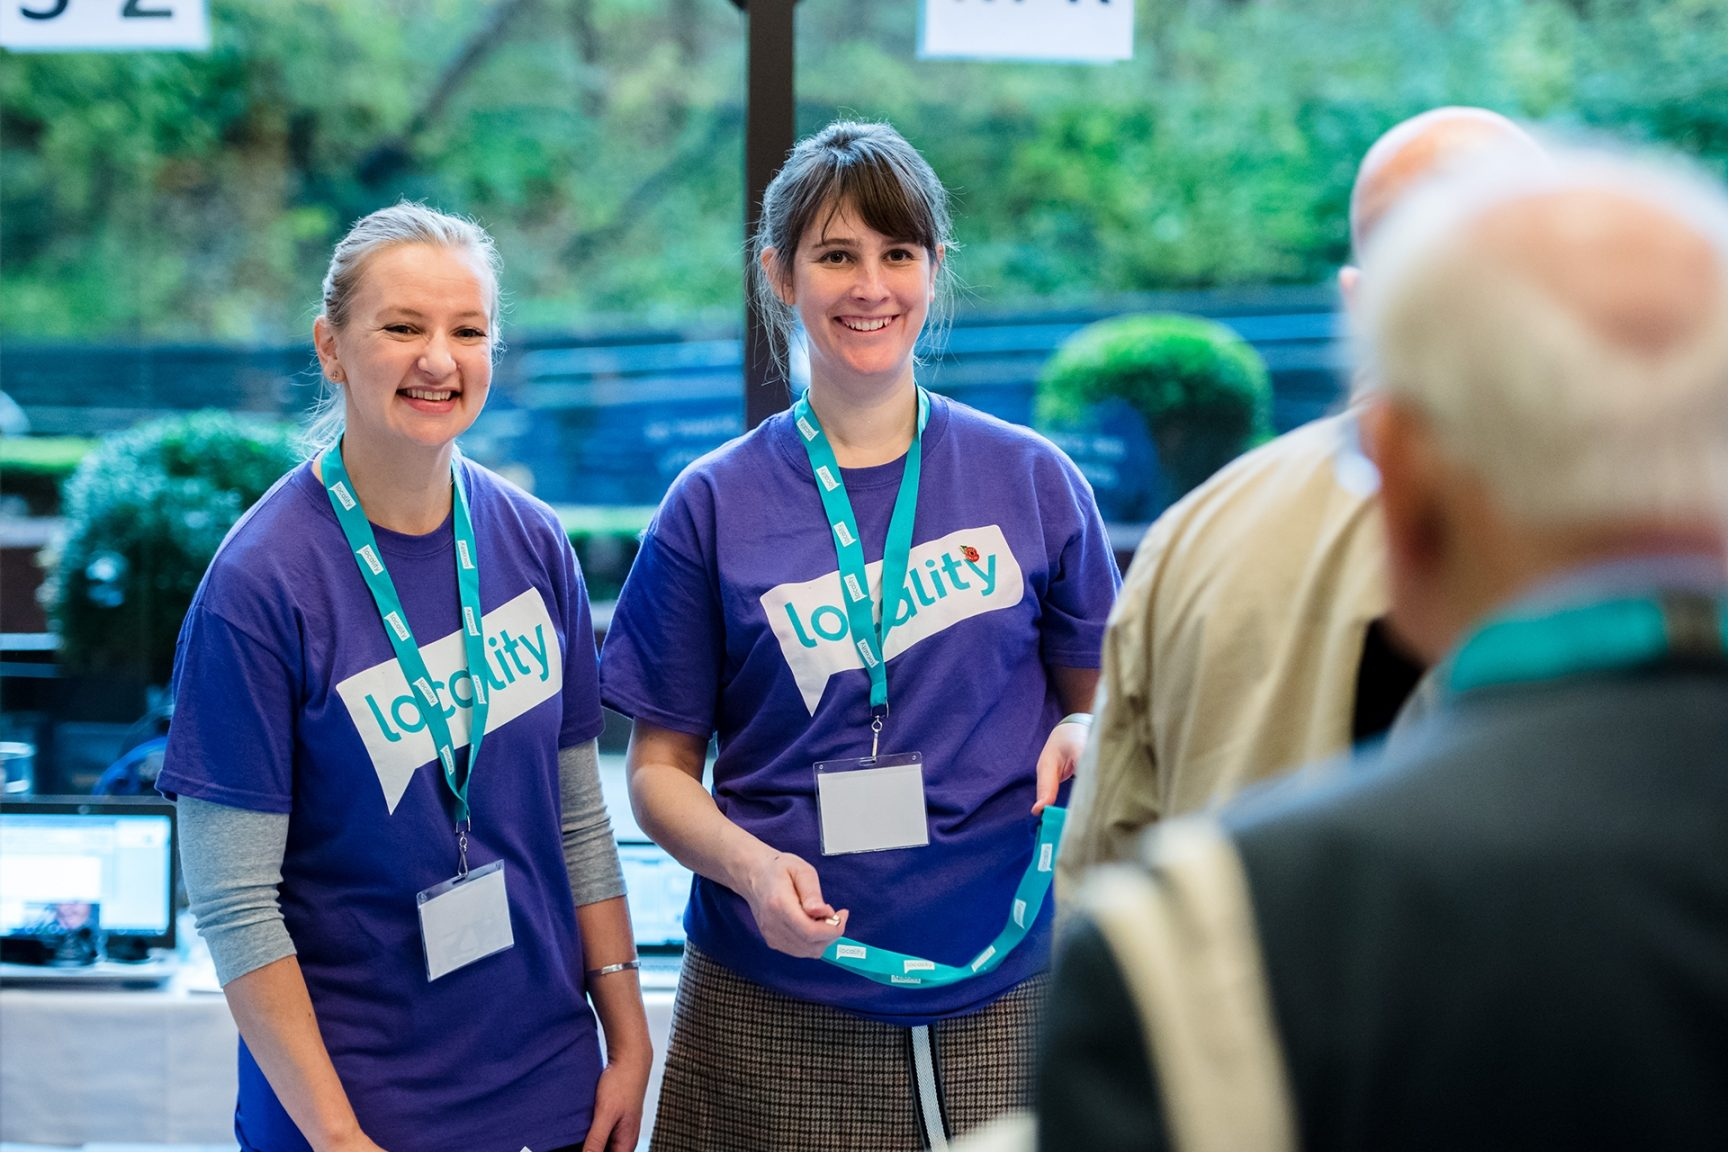 Two members of Locality wearing Locality t-shirts at an event